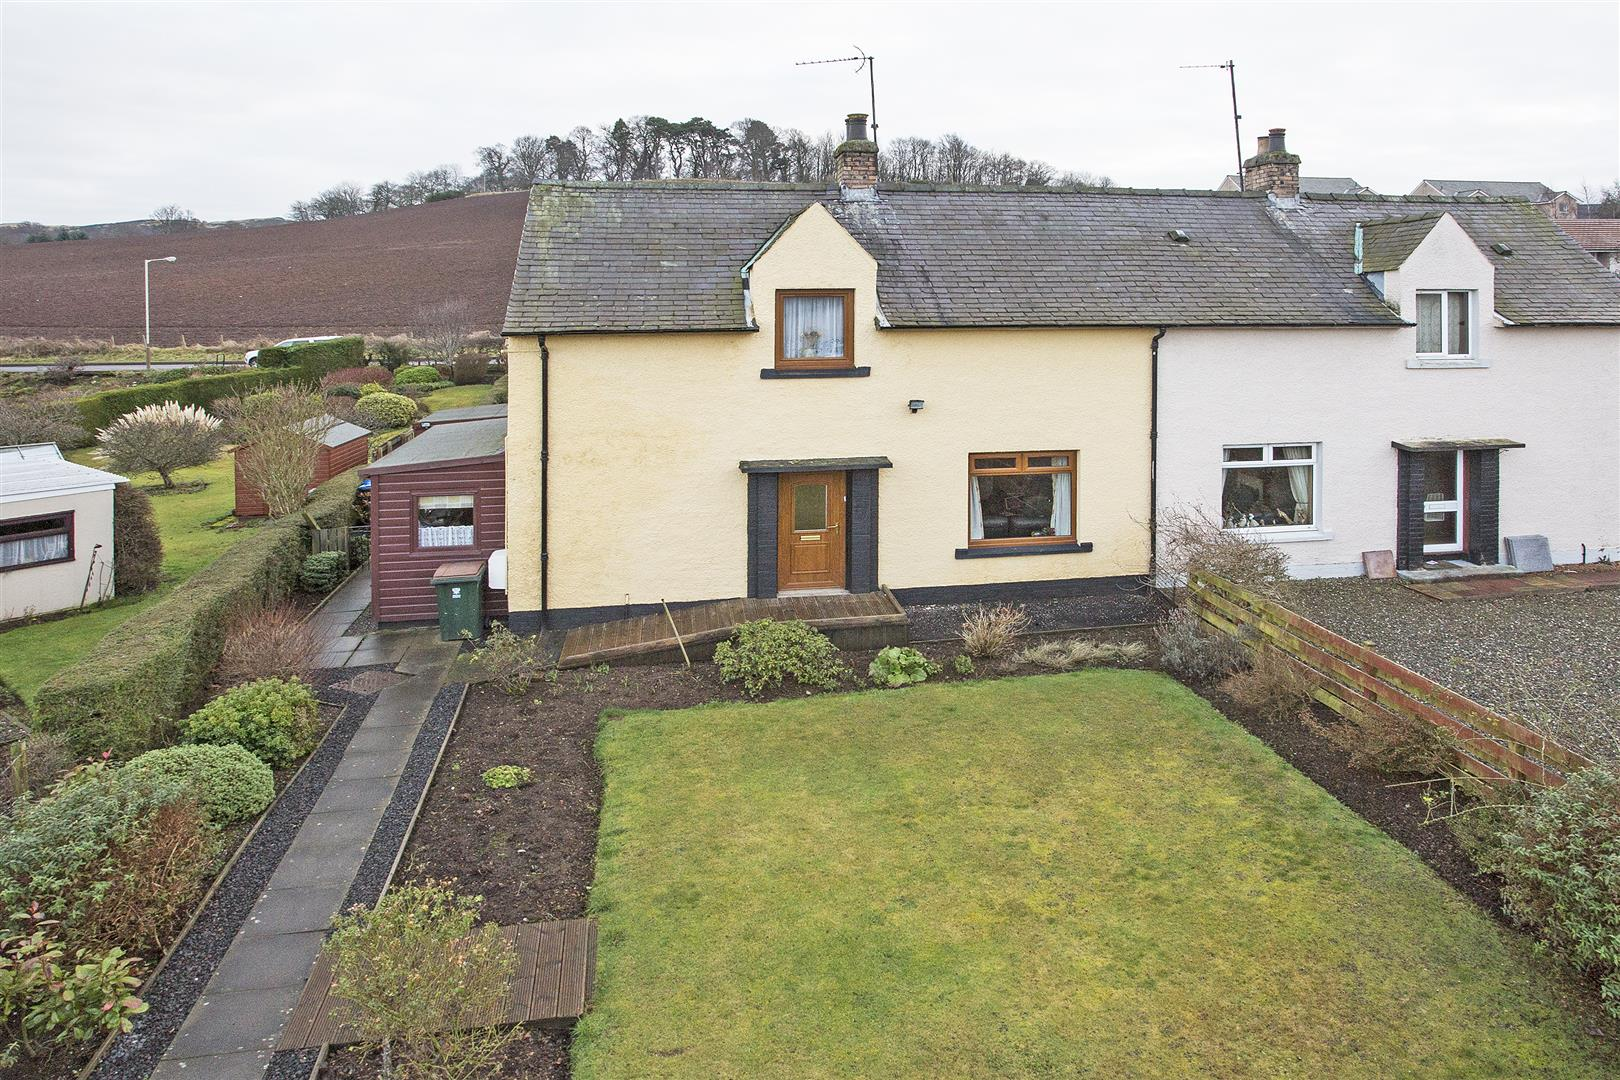 Croft Place, Dunning, Dunning, Perthshire, PH2 0SB, UK